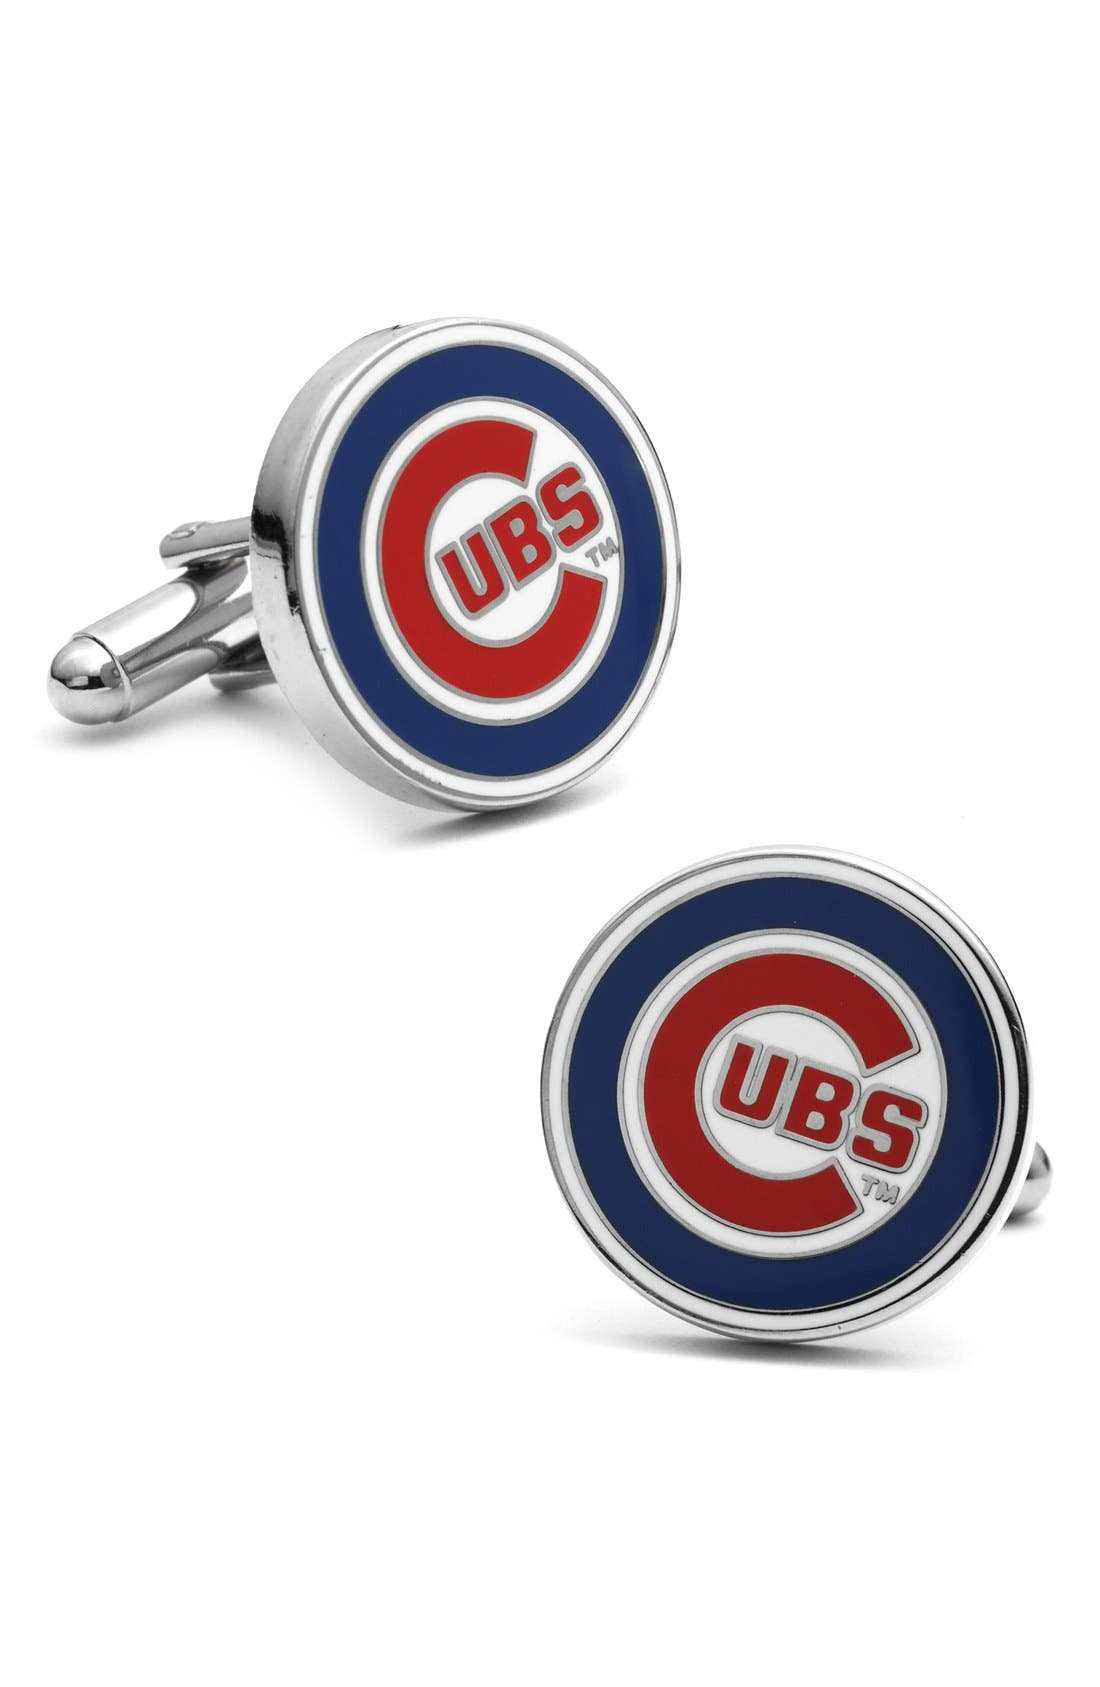 'Chicago Cubs' Cuff Links,                         Main,                         color, BLUE/ RED/ WHITE